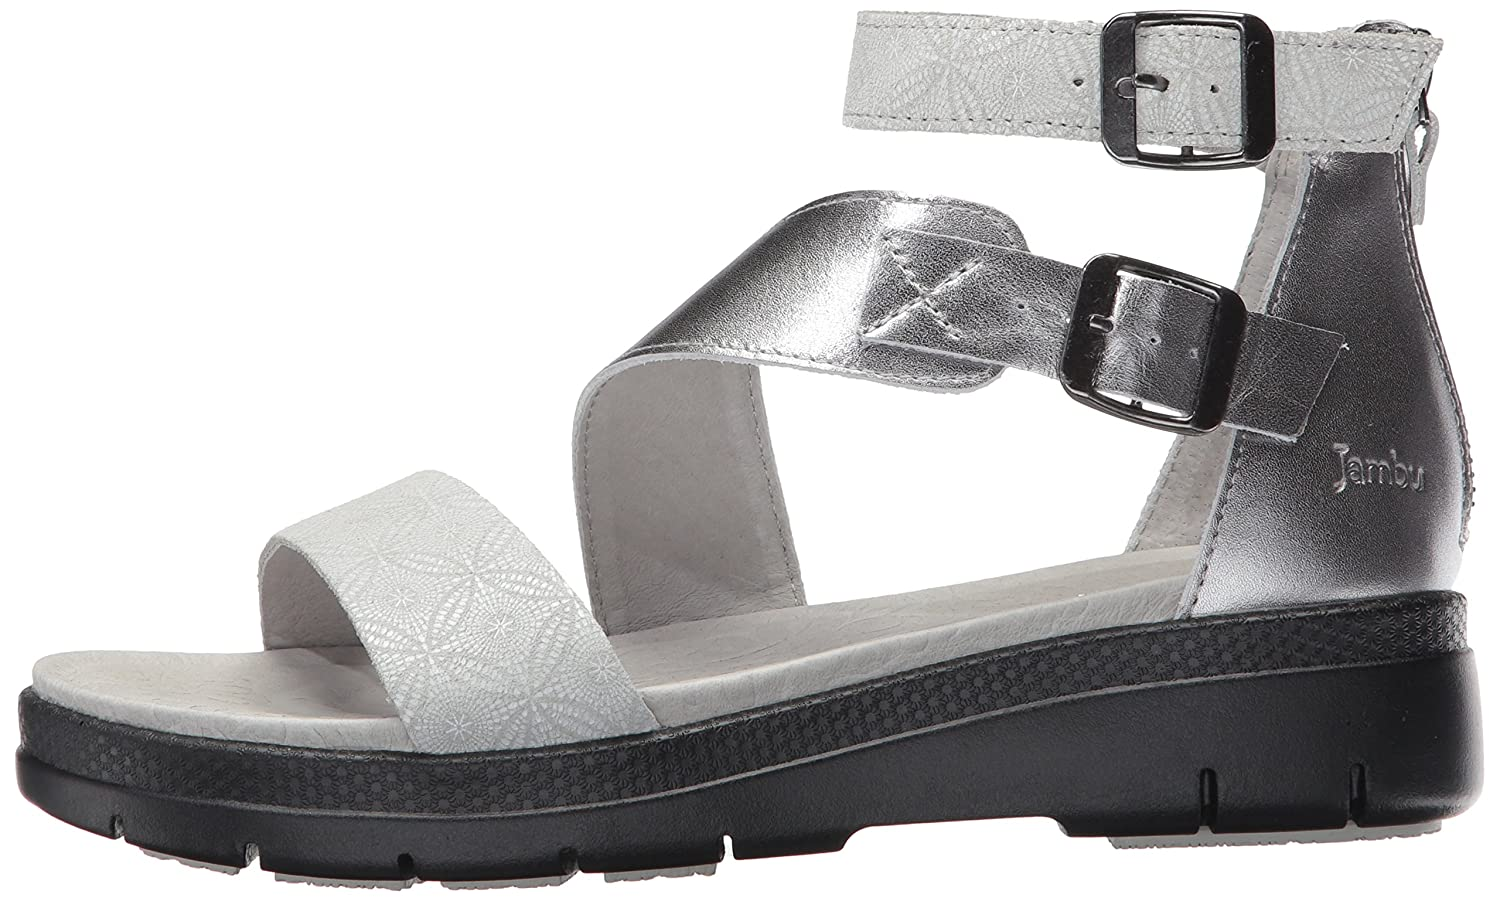 Jambu Women's Cape May Wedge Sandal B01IDQMYR4 6.5 B(M) US|Ice Print